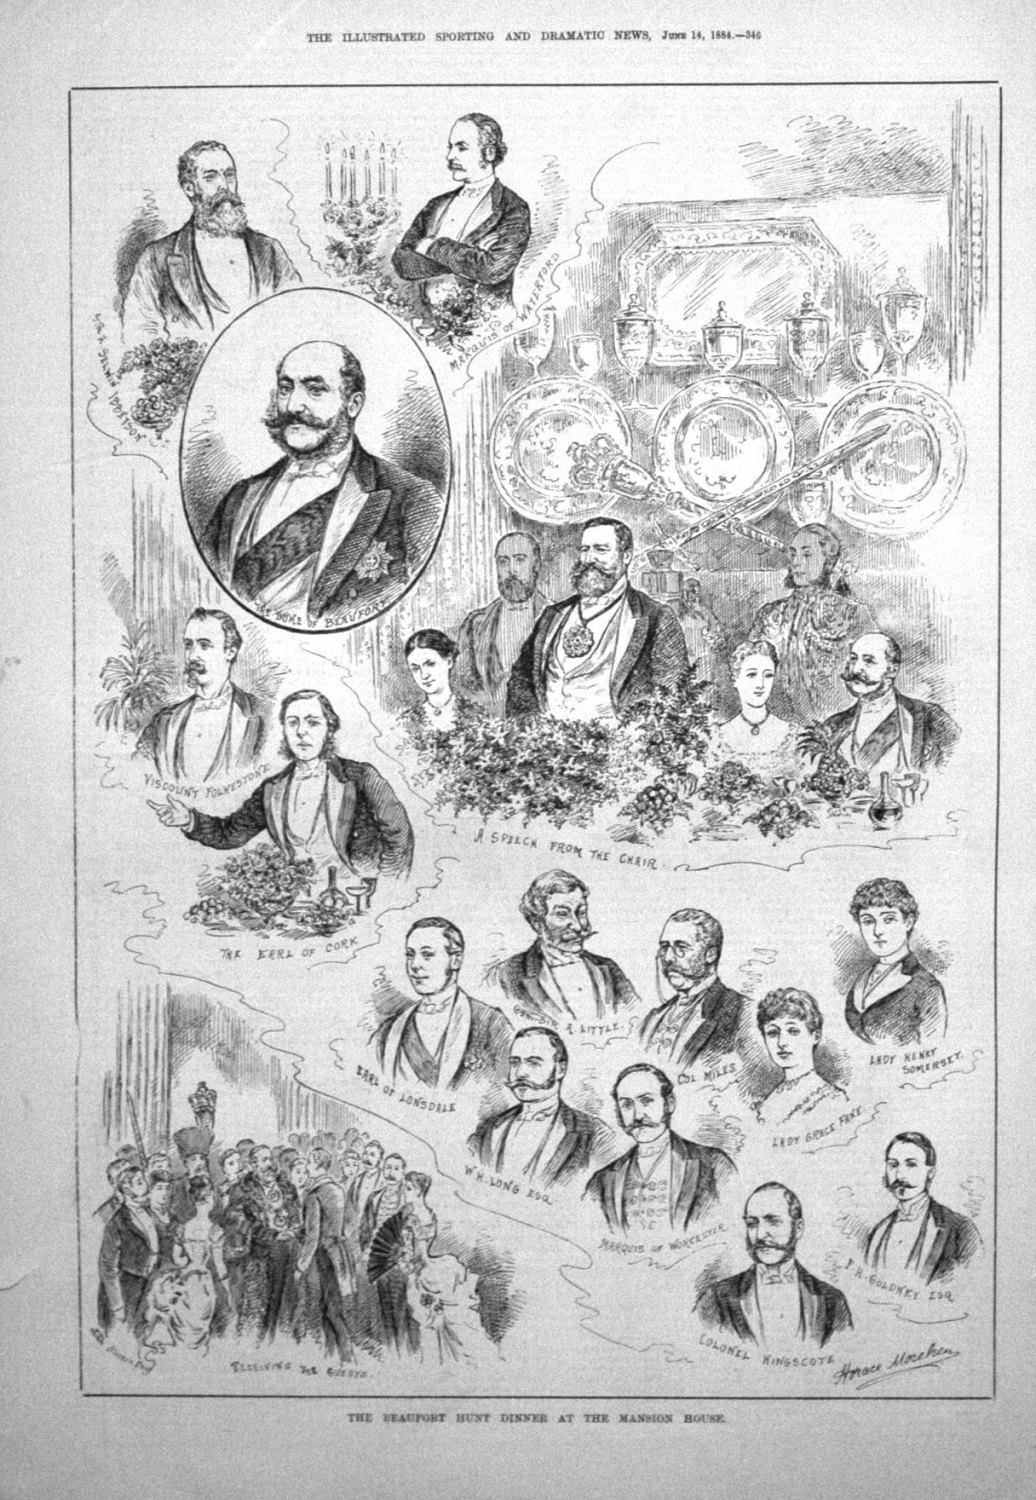 The Beaufort Hunt Dinner at the Mansion House. 1884